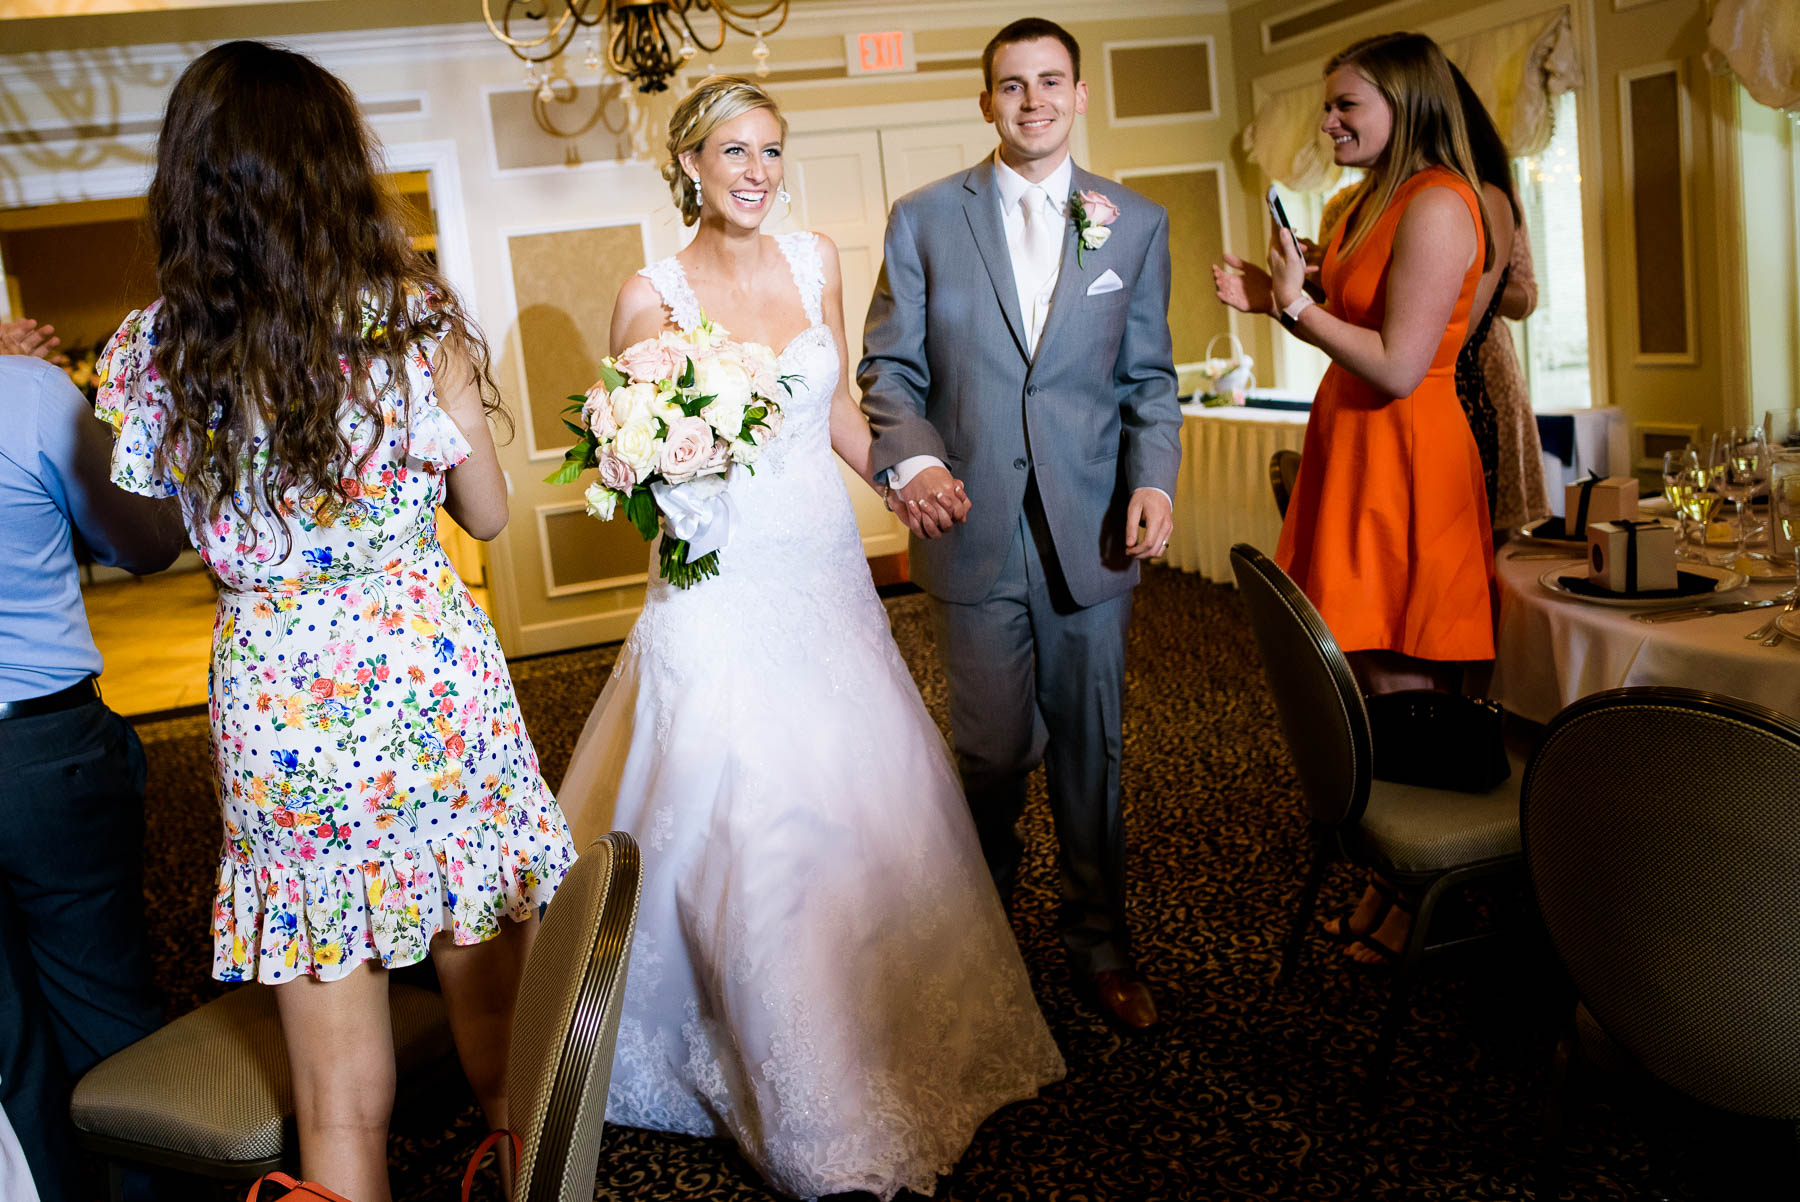 Bride and groom are introduced at the St. Charles Country Club wedding.